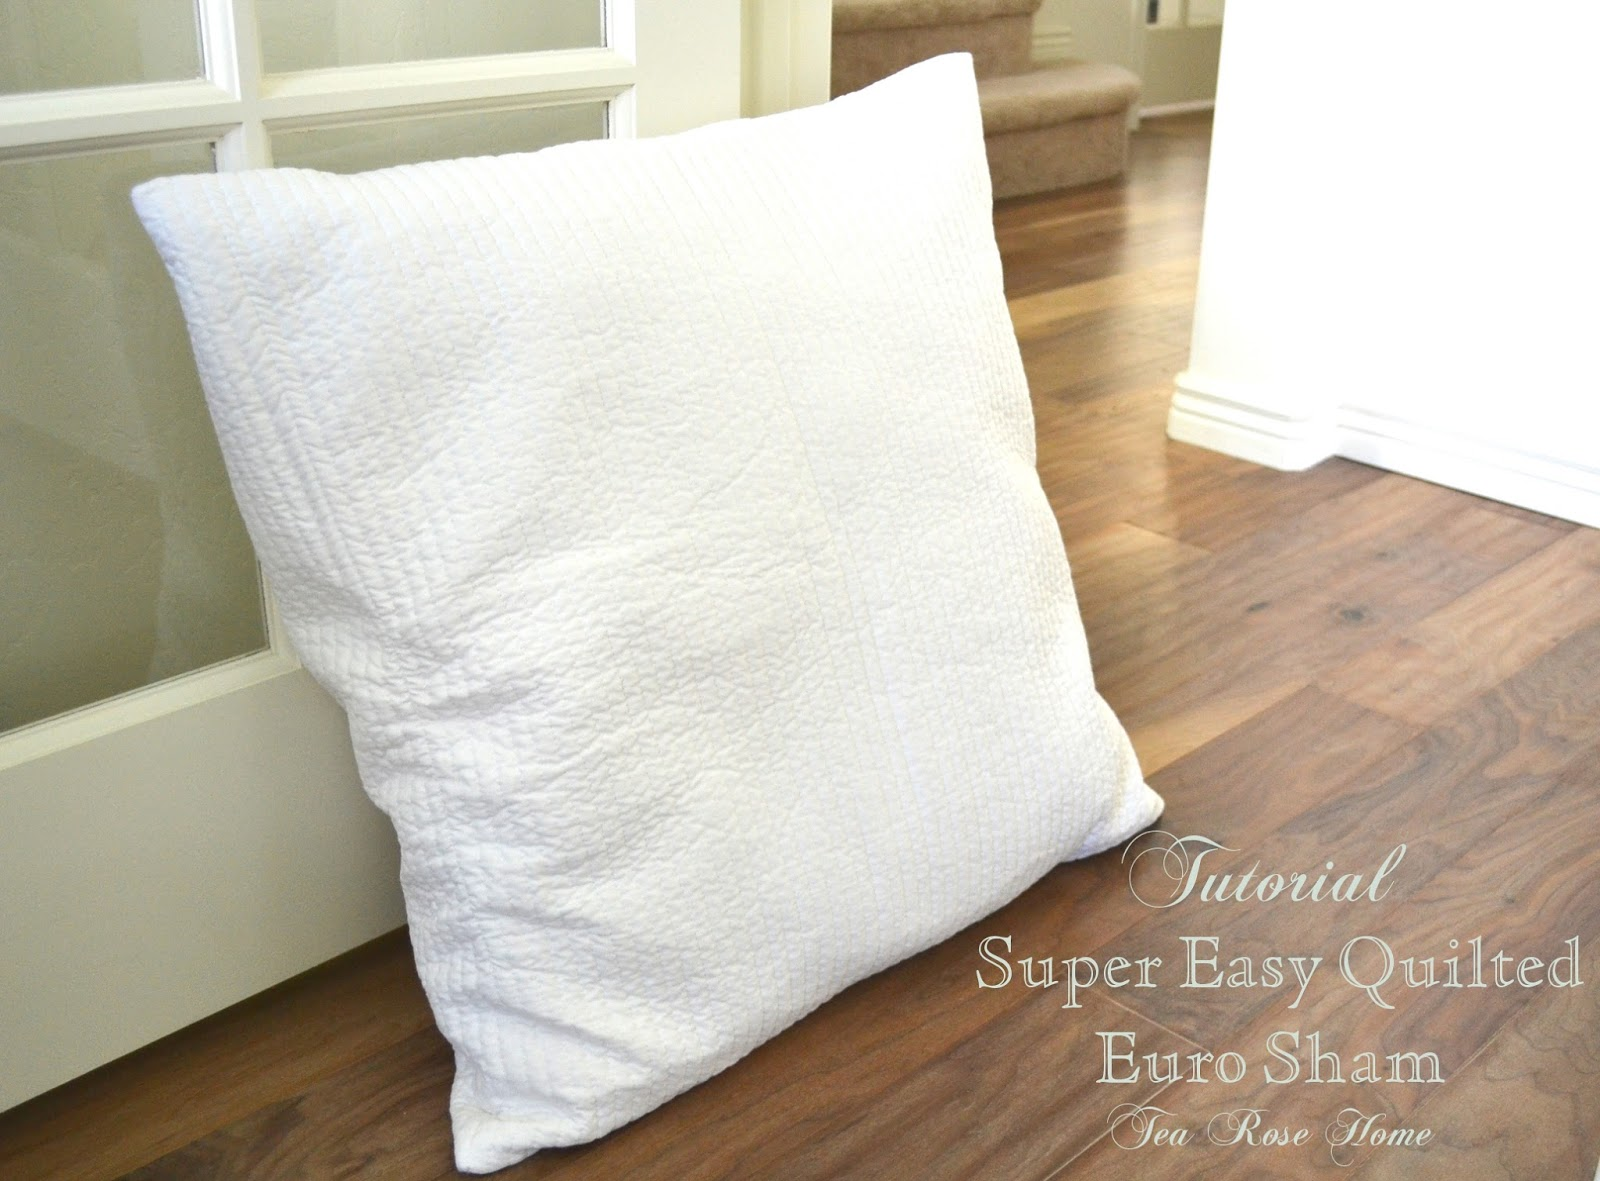 tutorial super easy quilted euro sham